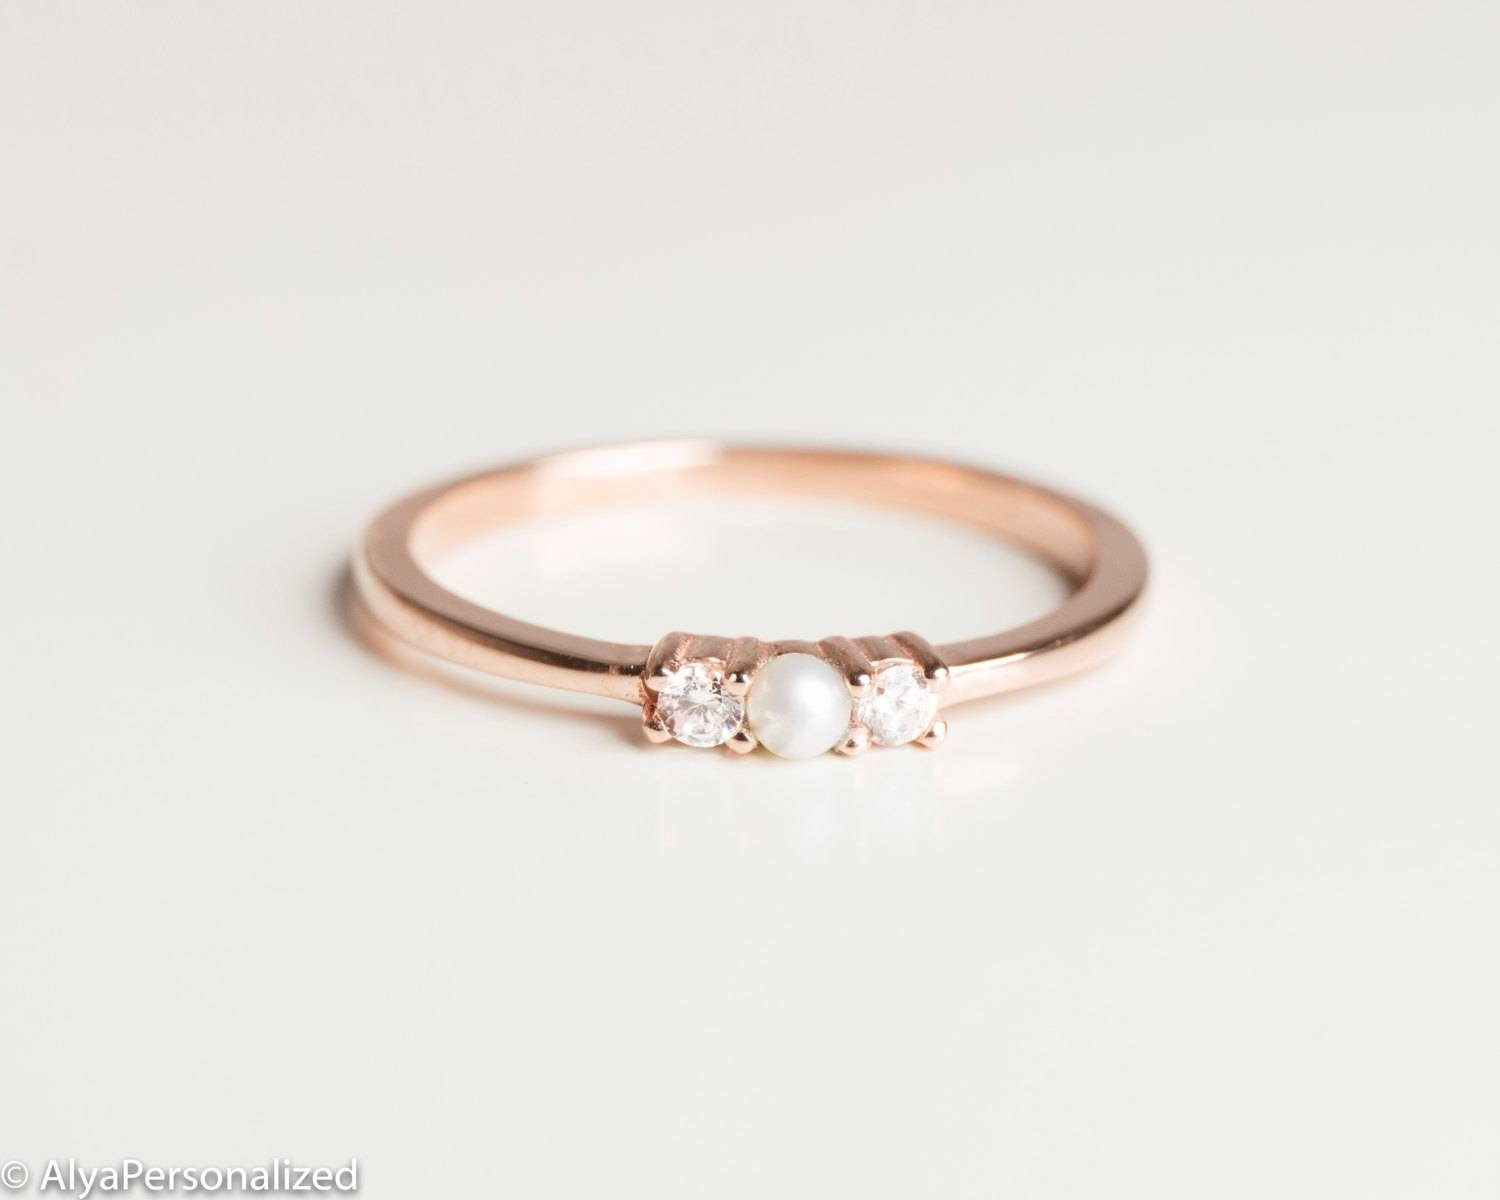 Anniversary Ring Simple Ring Band Thin Rose Gold Ring In Best And Newest Rose Gold Anniversary Rings (View 3 of 25)